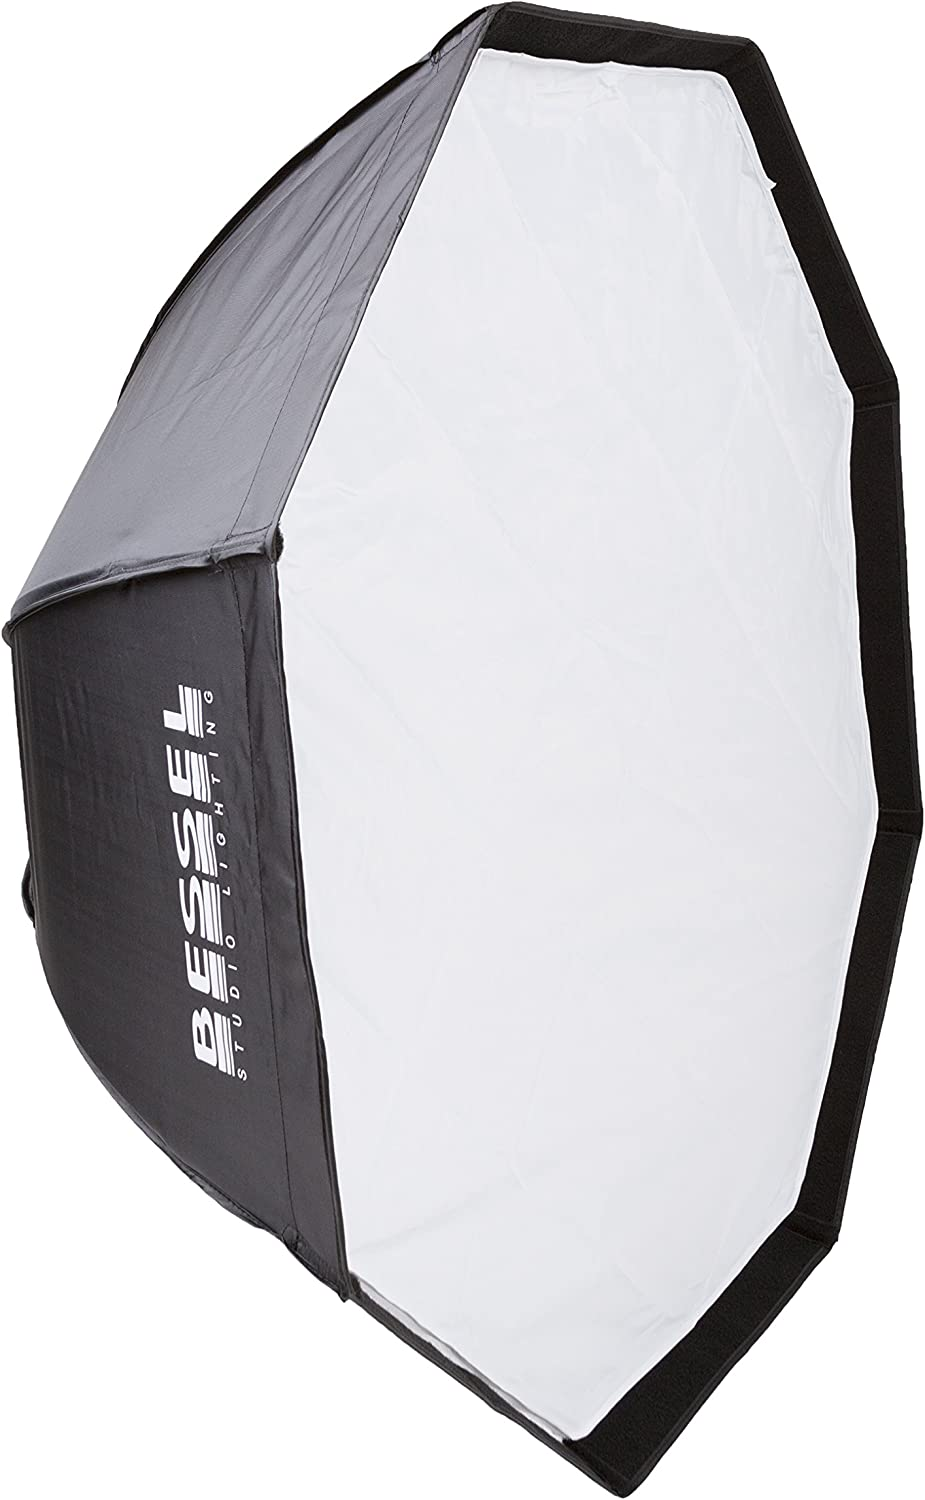 Bessel 150 cm Octabox Easy Popup Softbox with 4 cm Honeycomb Grid for EL-Fit Lamps